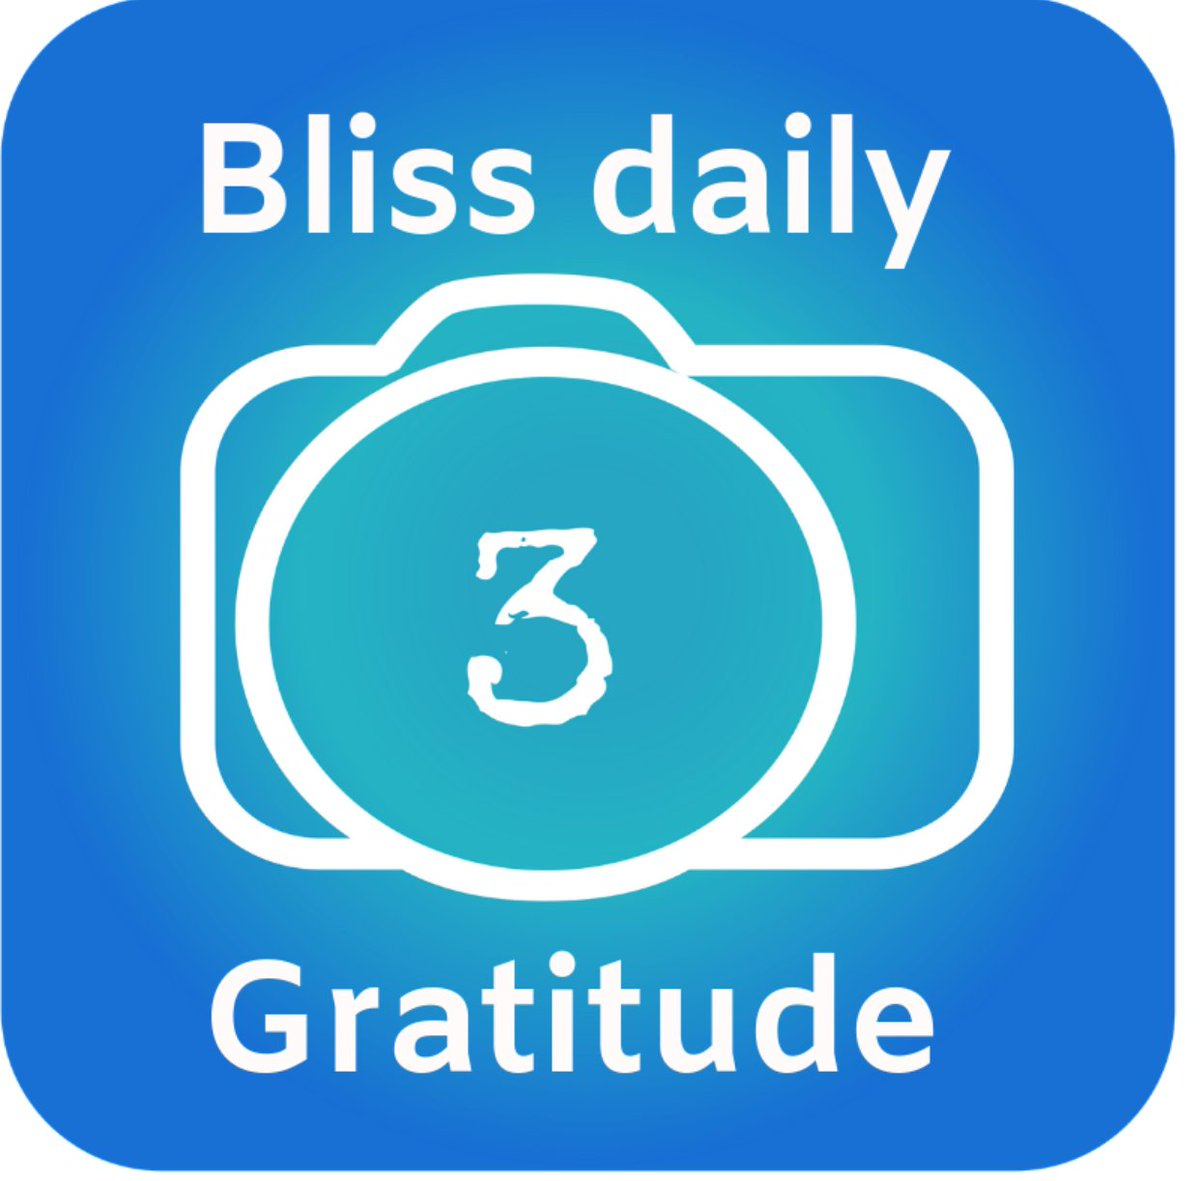 @blissdaily3 FREE gratitude app is easy and simple to use. Available in both IOS and Google stores.  https://soo.nr/0piM  #gratitudeapp #free #mindset #positivity #seethegood #buildingcommunity #rewireyourbrain #postwithpurpose #goodineveryday #neuroplasticity  #easypic.twitter.com/8tfIWY2qS6